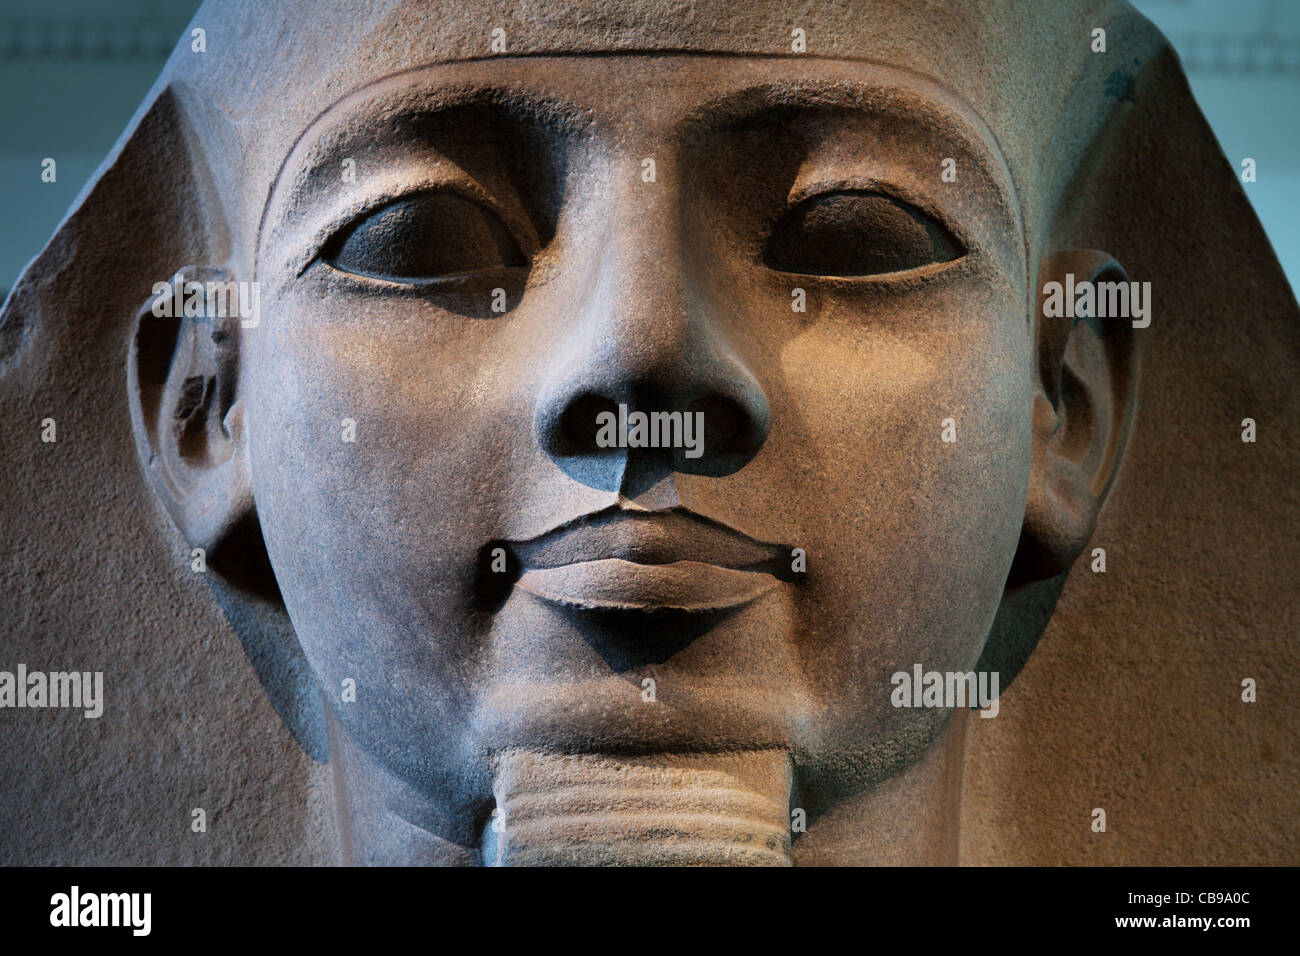 Ramses II stone head, British Museum, London, UK - Stock Image